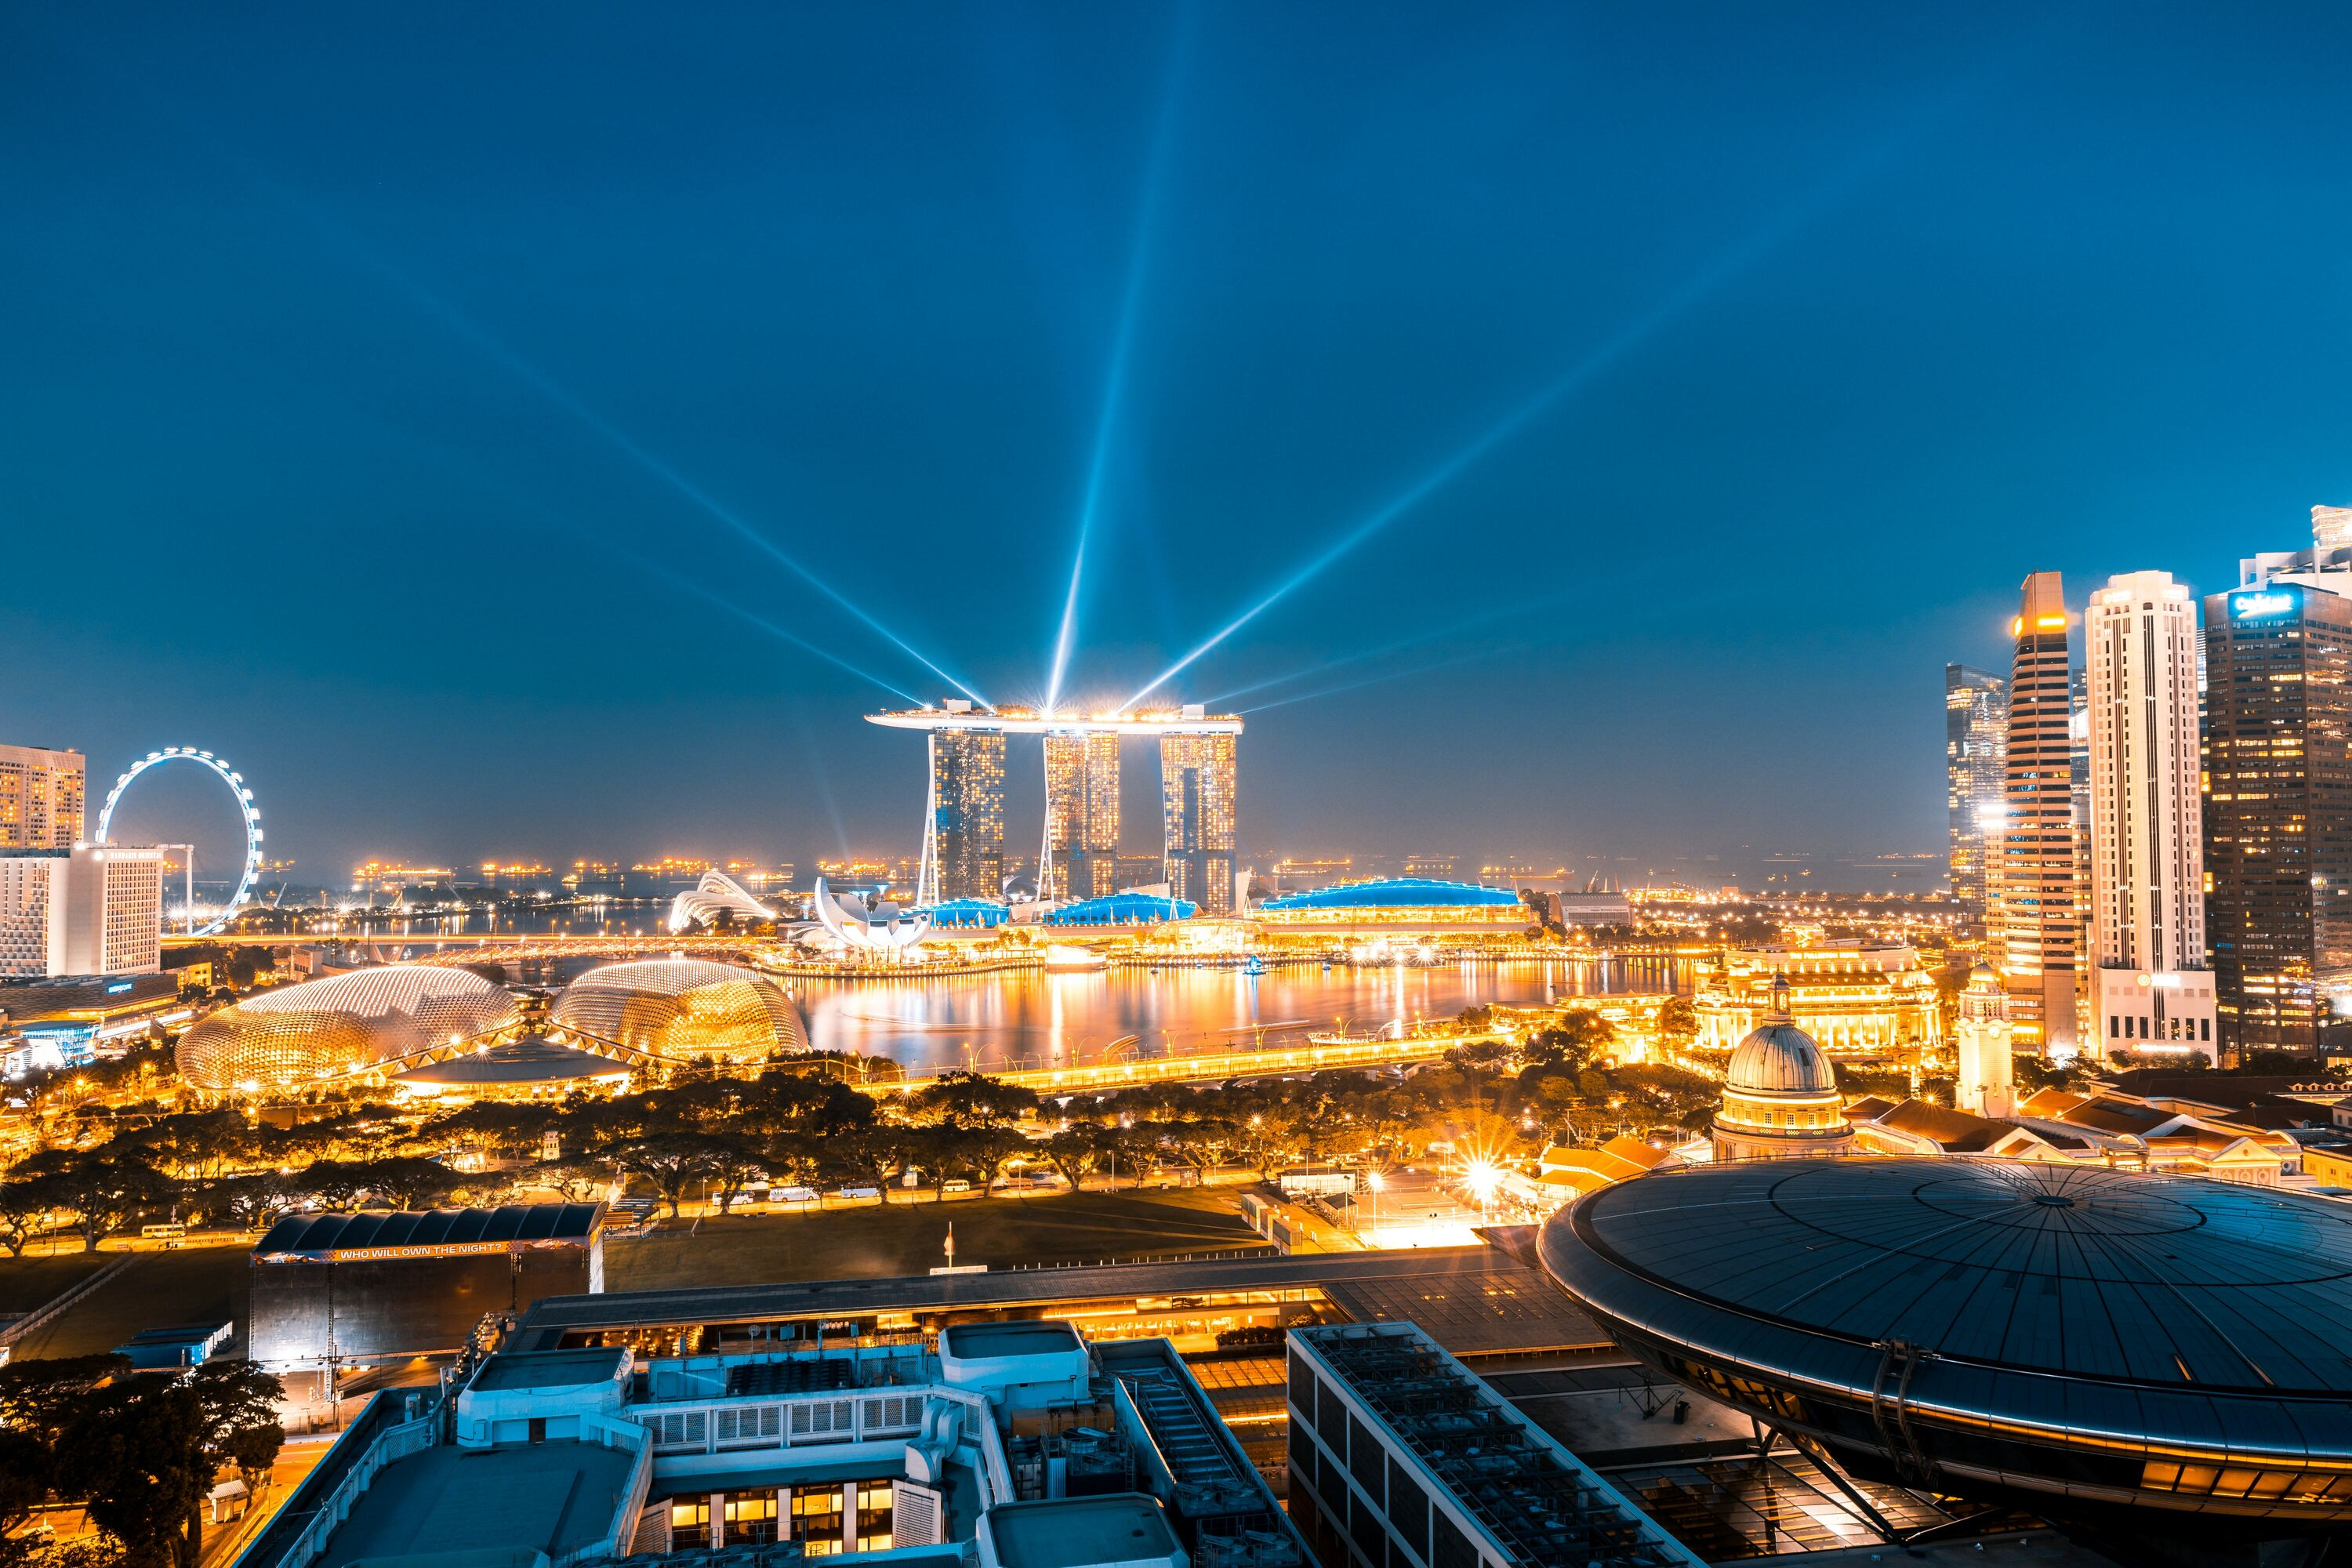 Is Singapore really boring? We want to find out the truth